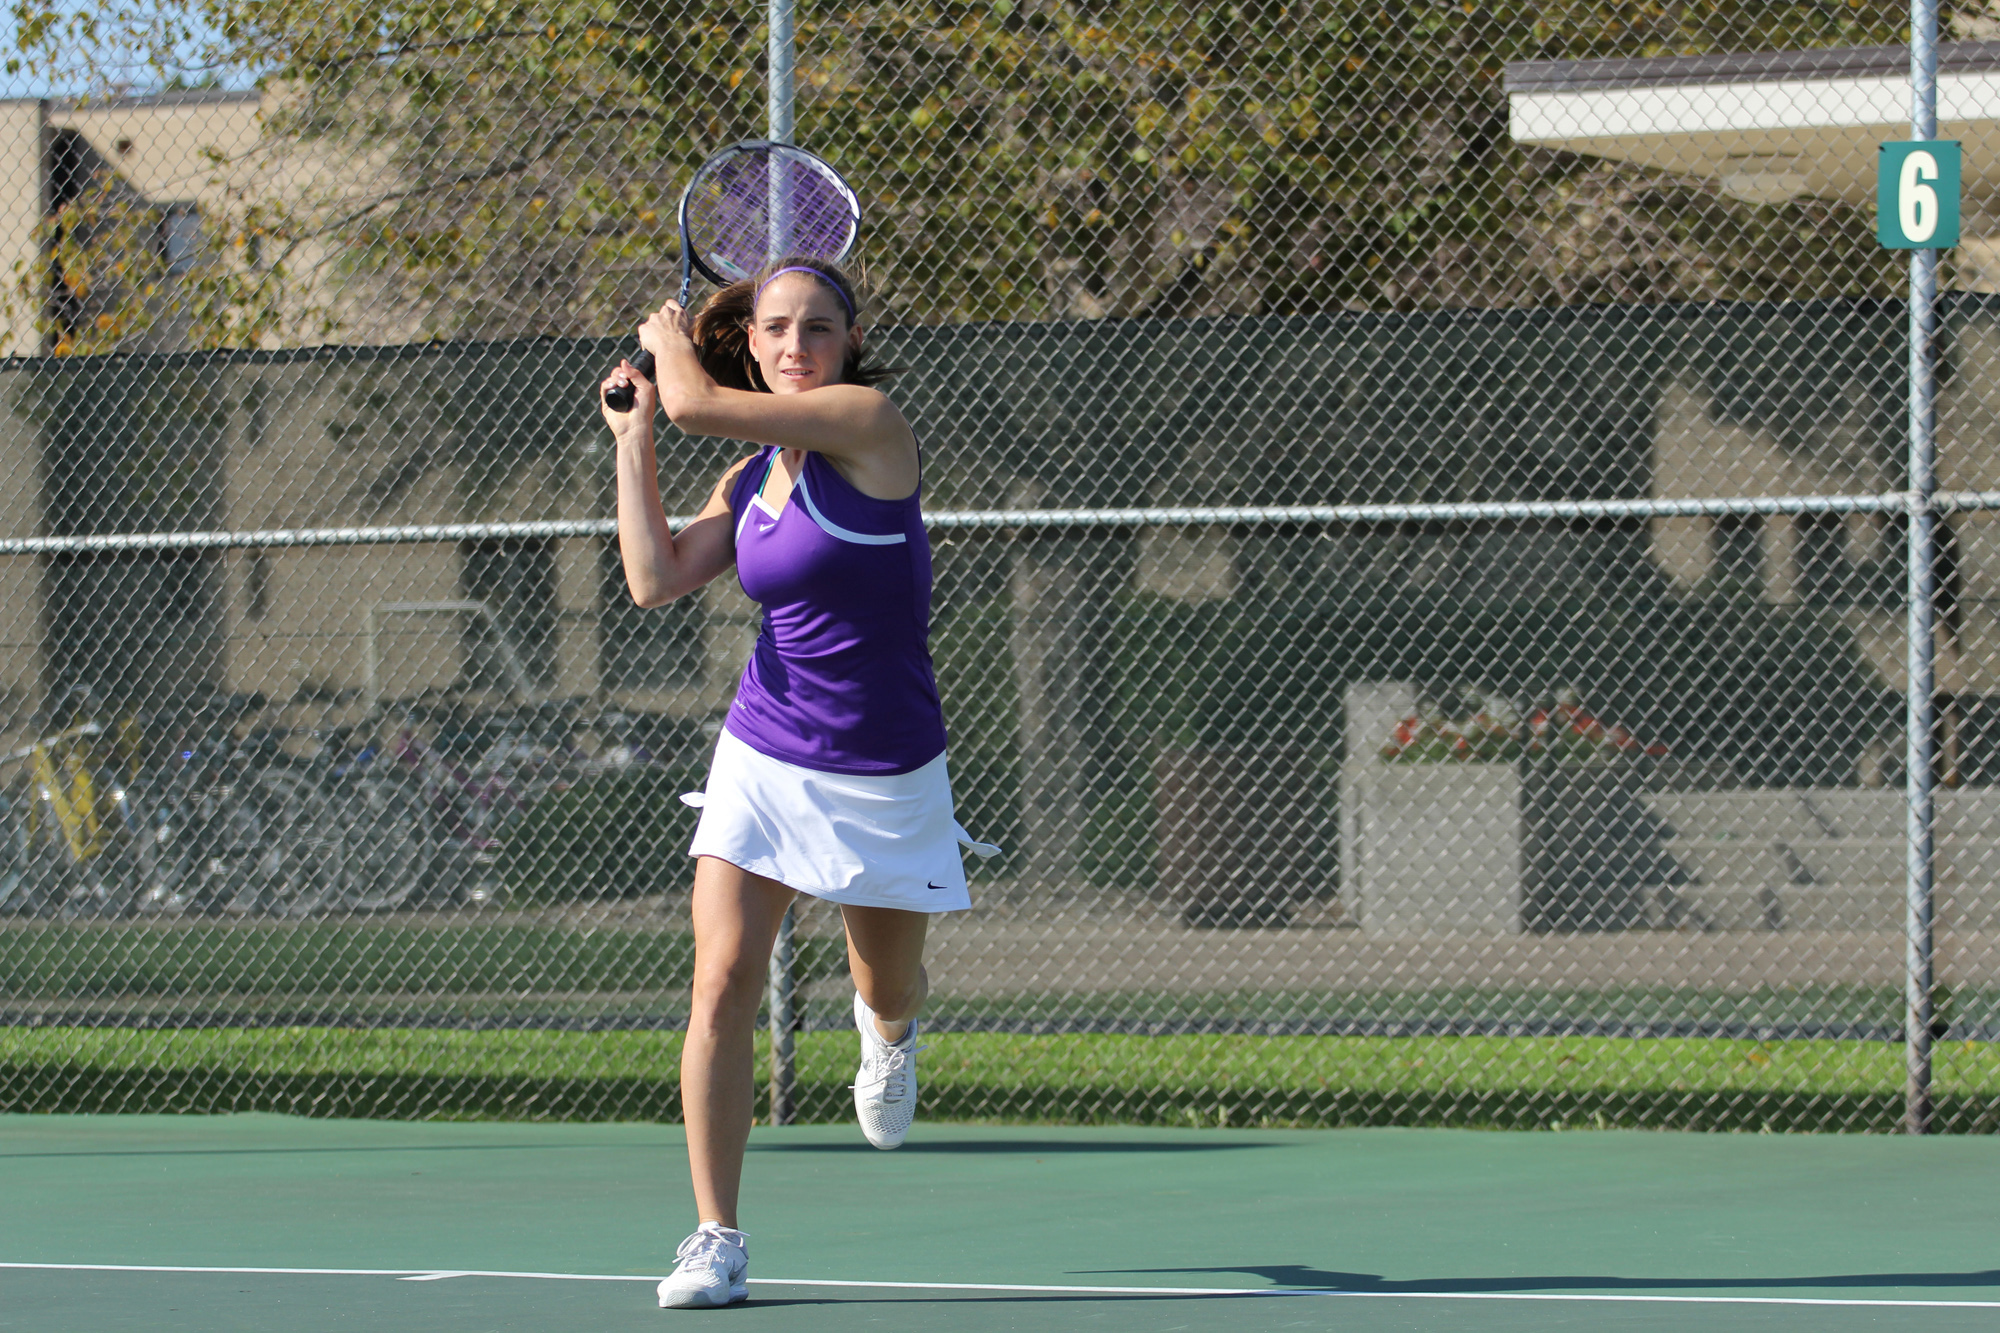 A player on the Goshen women's tennis team plays a game on the court